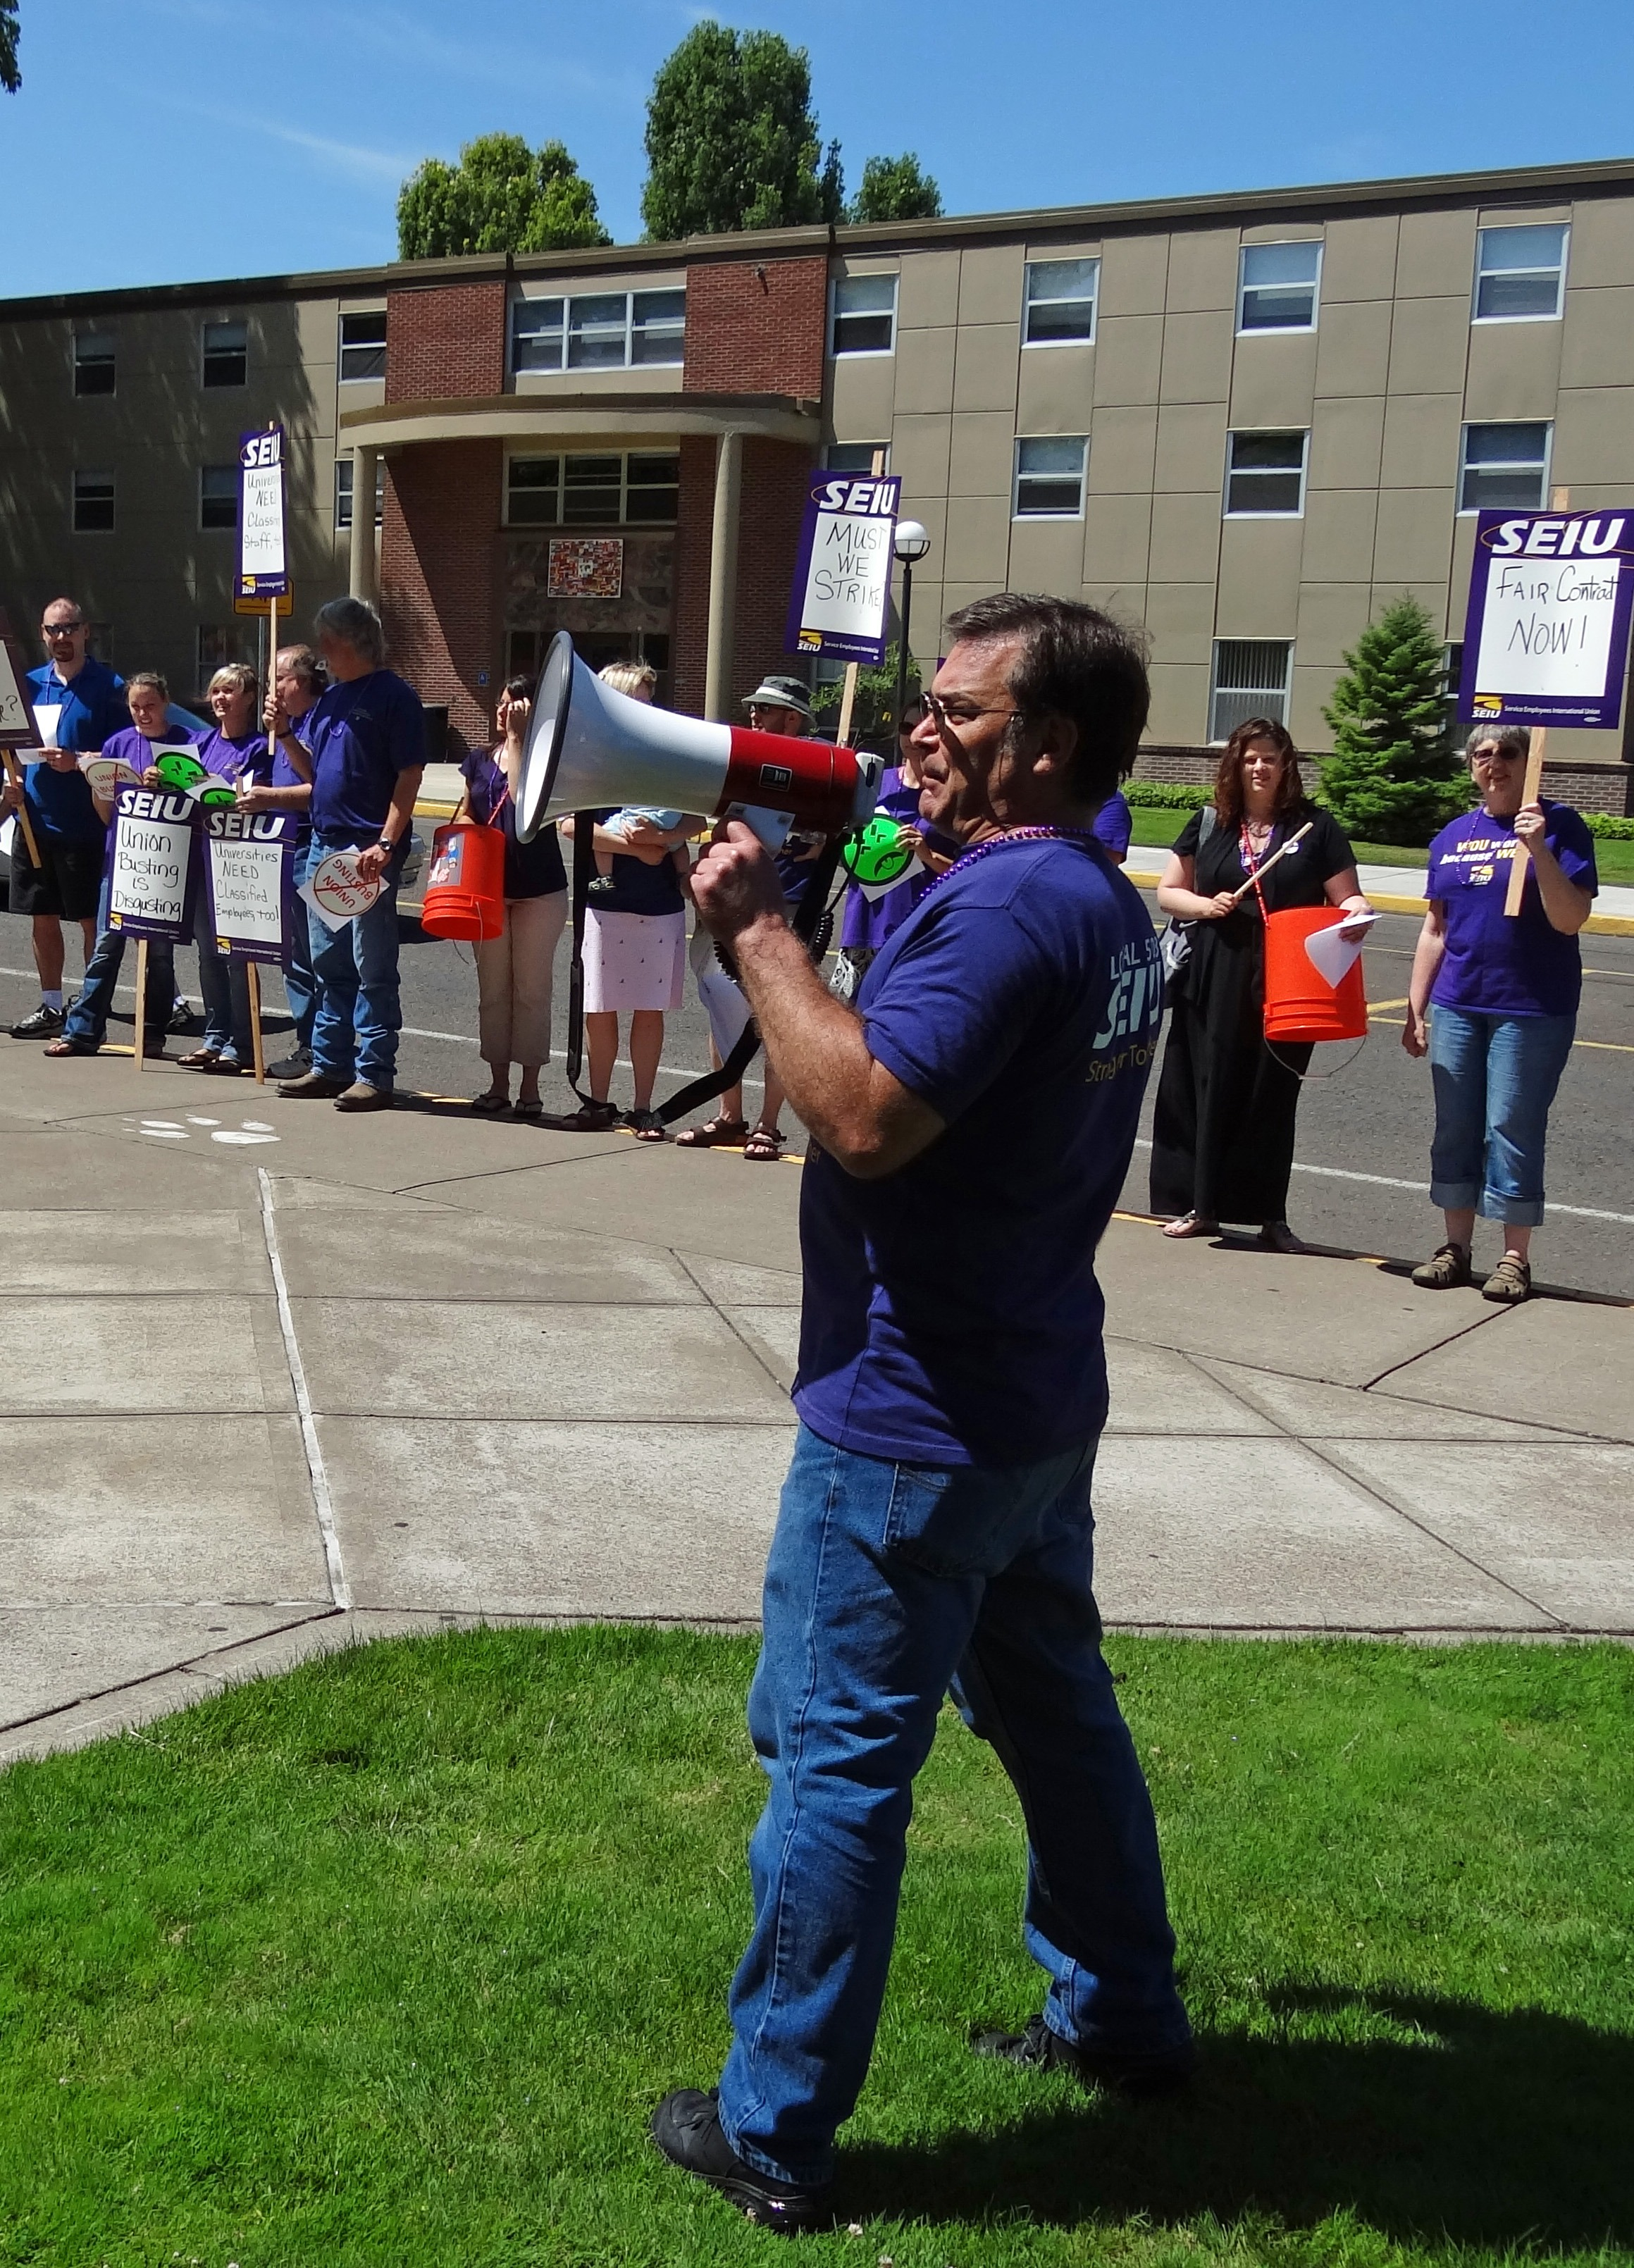 Photo of SEIU member Nat leading chants with megaphone